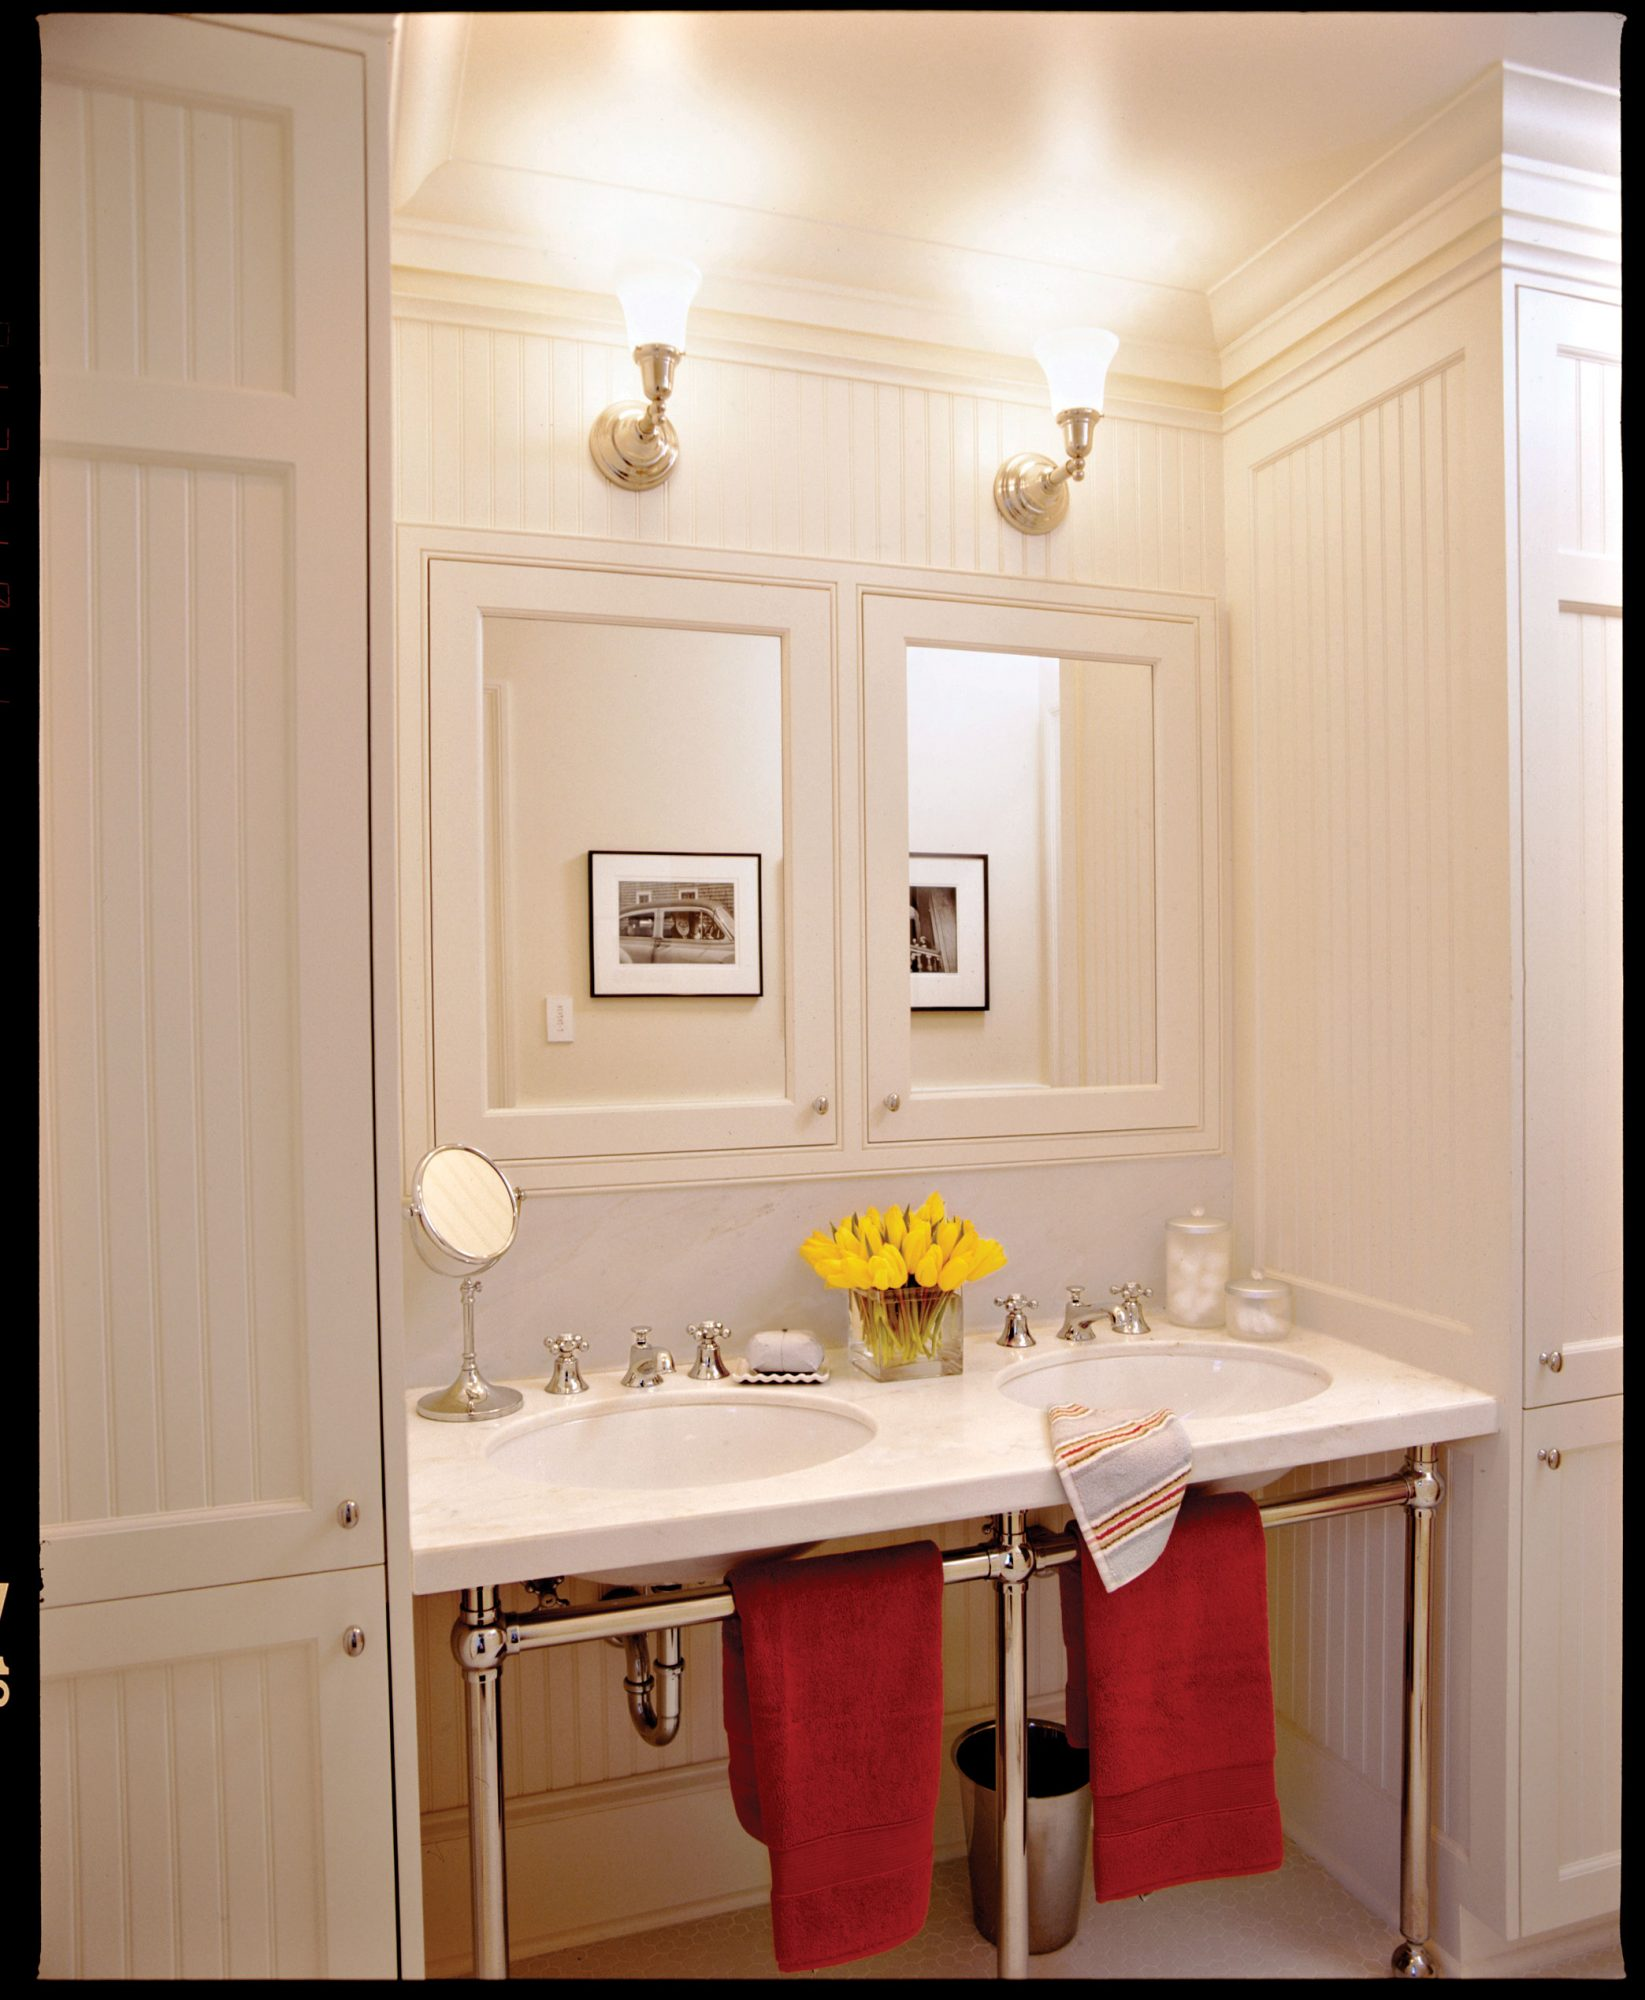 A Vanity Made for Two